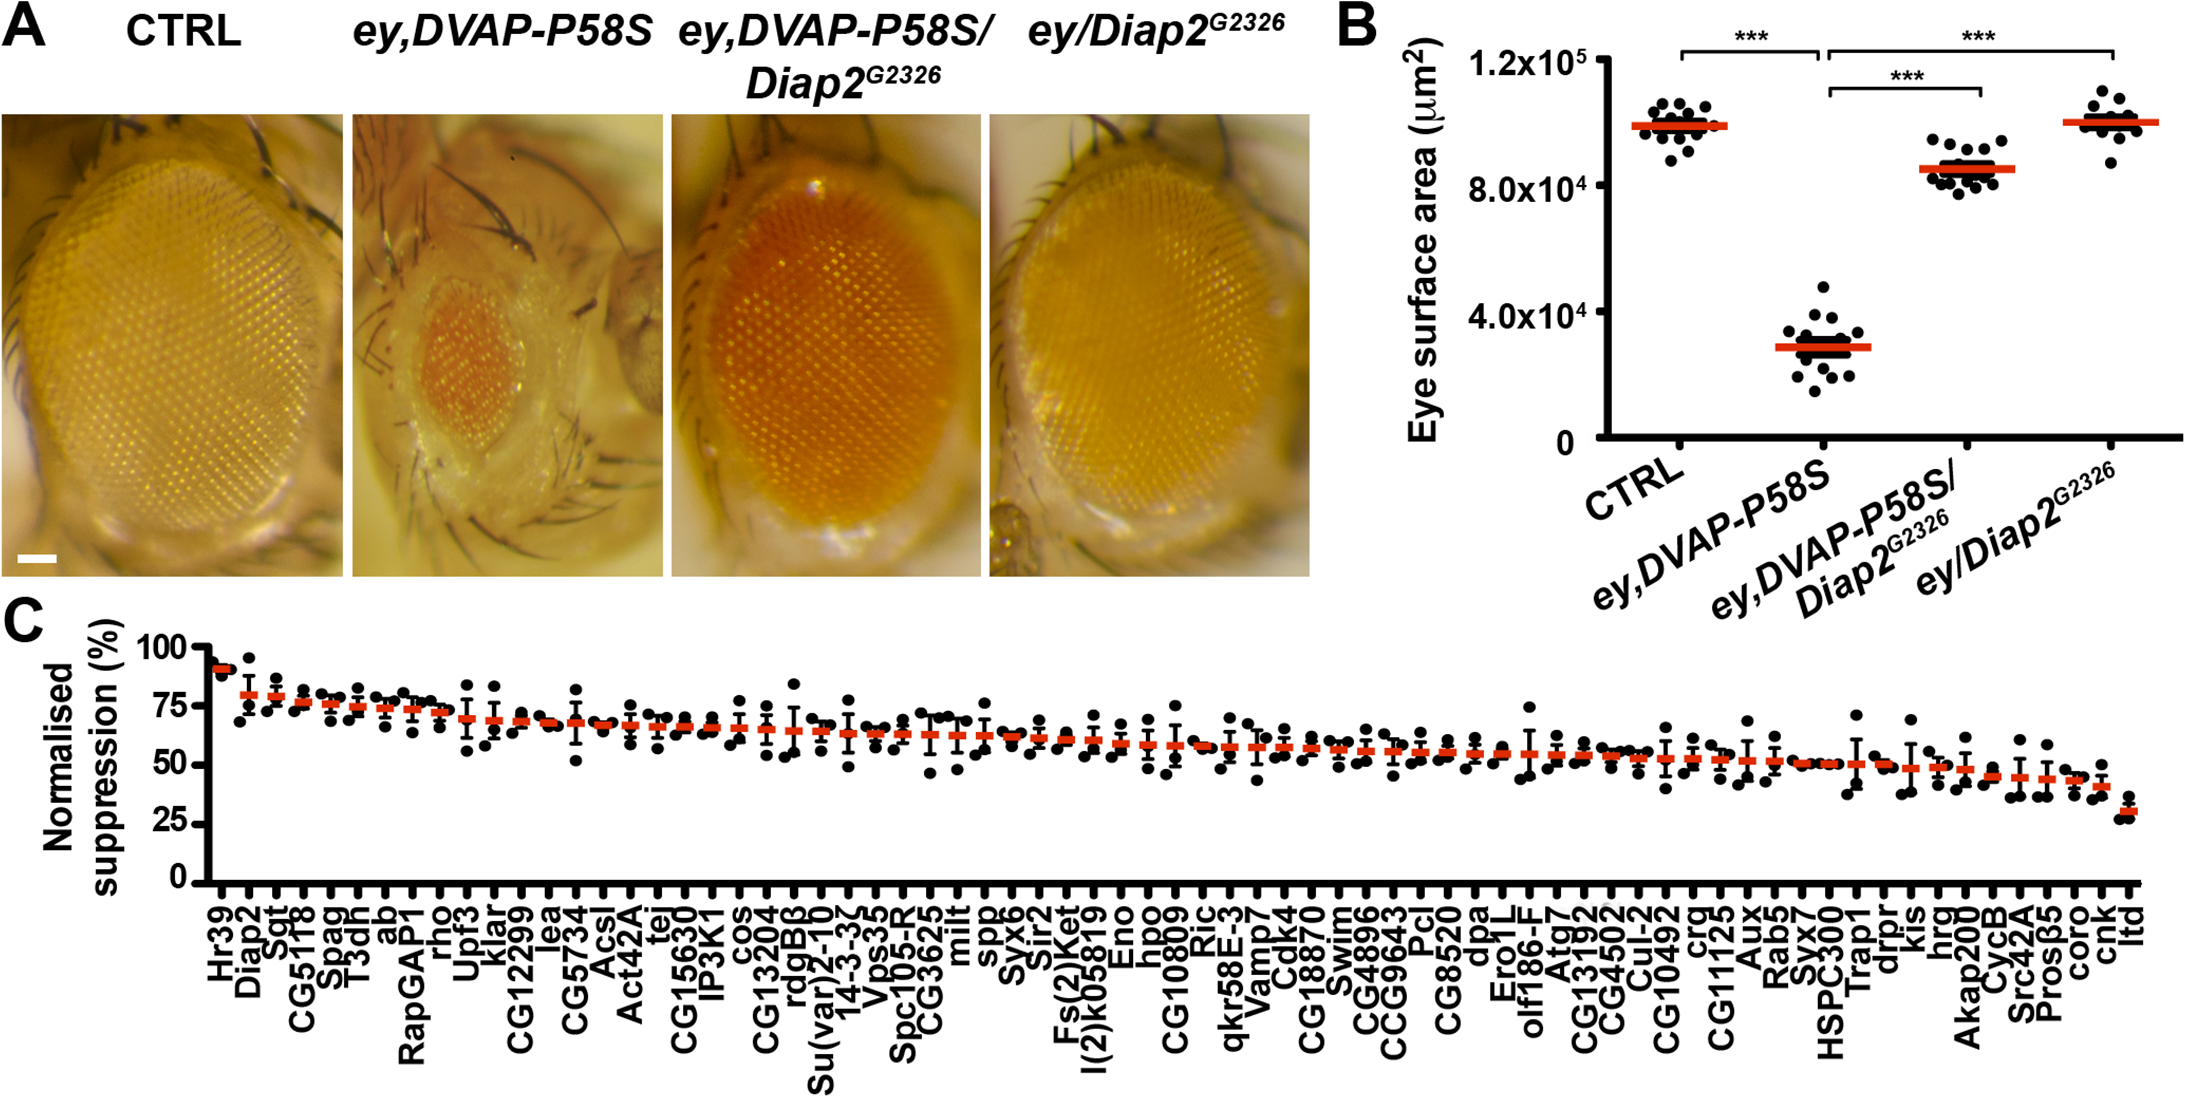 An overexpression screen for modifiers of the DVAP-P58S eye phenotype identified 71 suppressors.